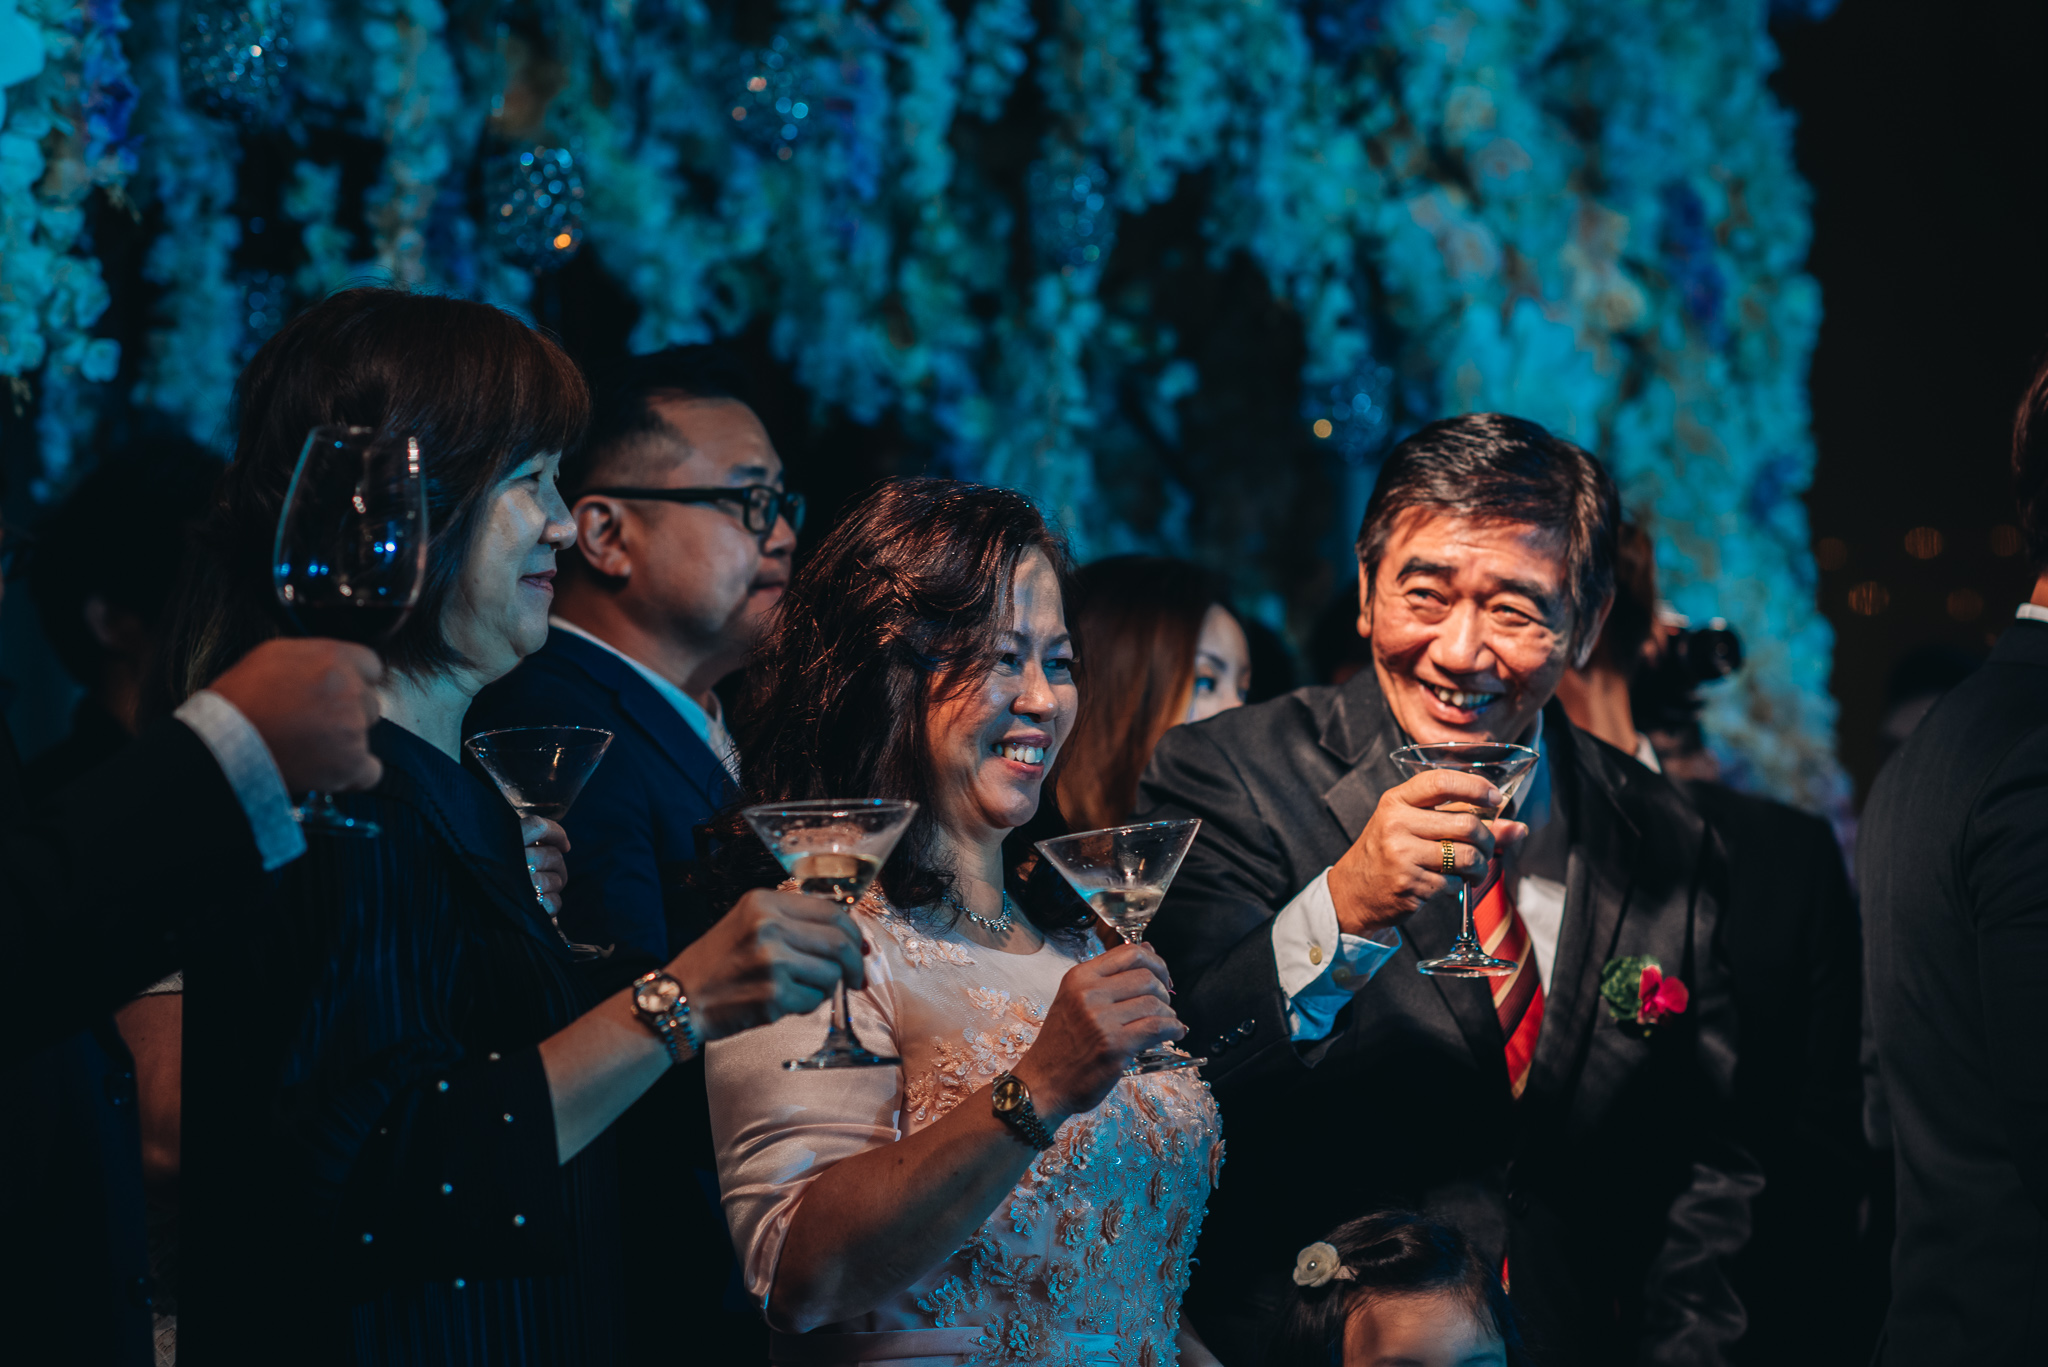 Cindy & Kevin Wedding Day Highlights (resized for sharing) - 202.jpg